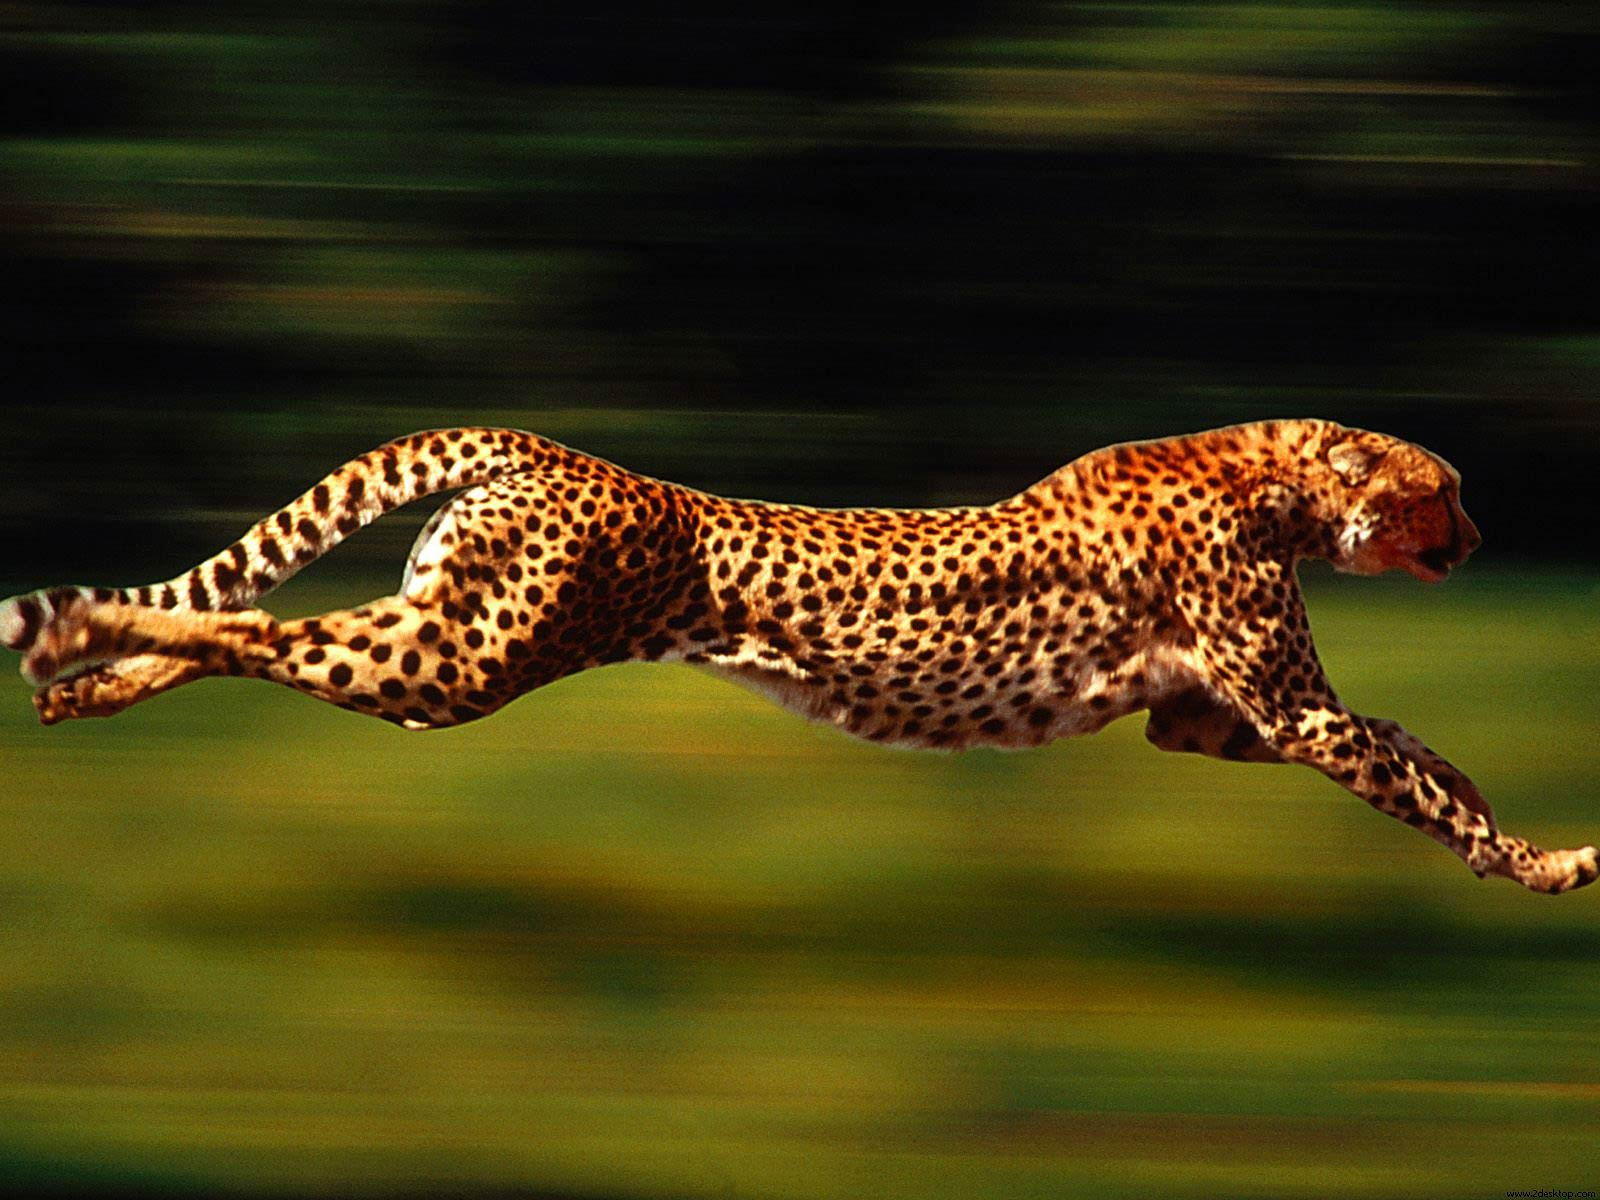 Cheetah Wallpapers - HD Wallpapers Inn